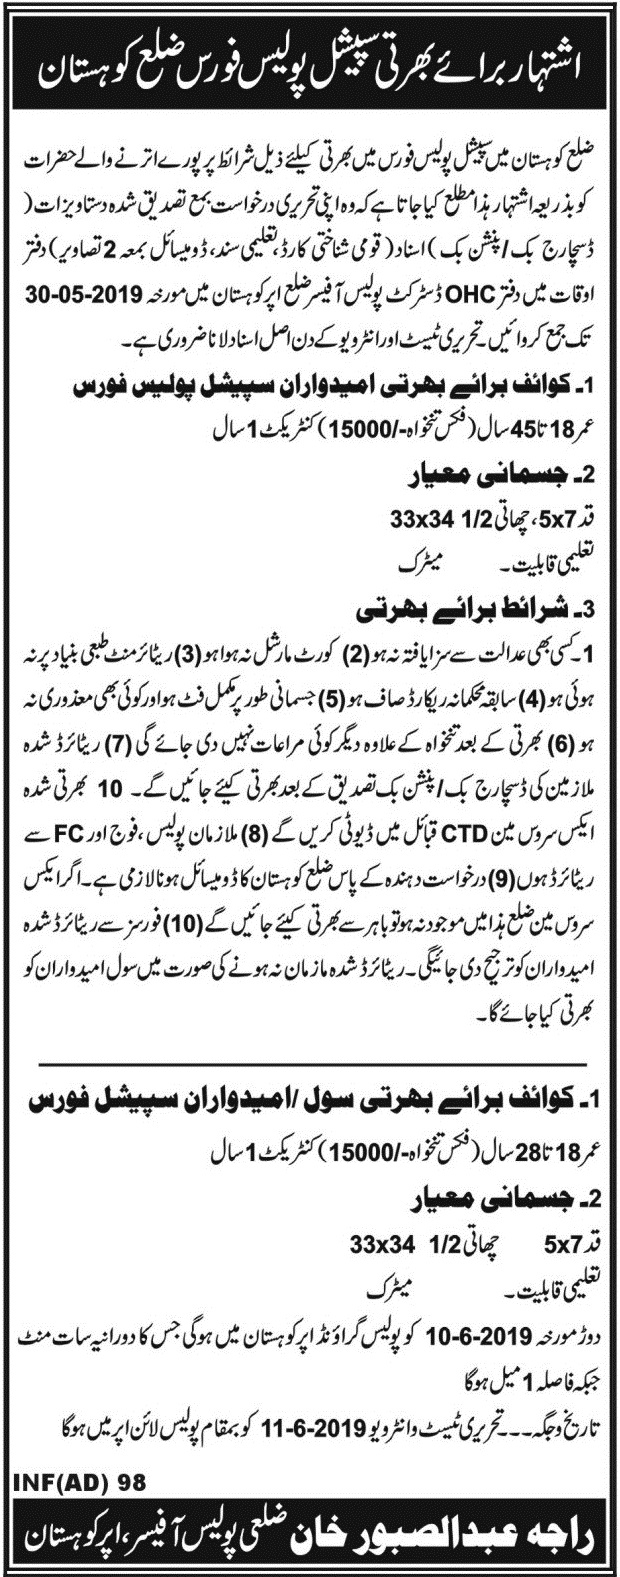 Special Police Force Kohistan Jobs 2019